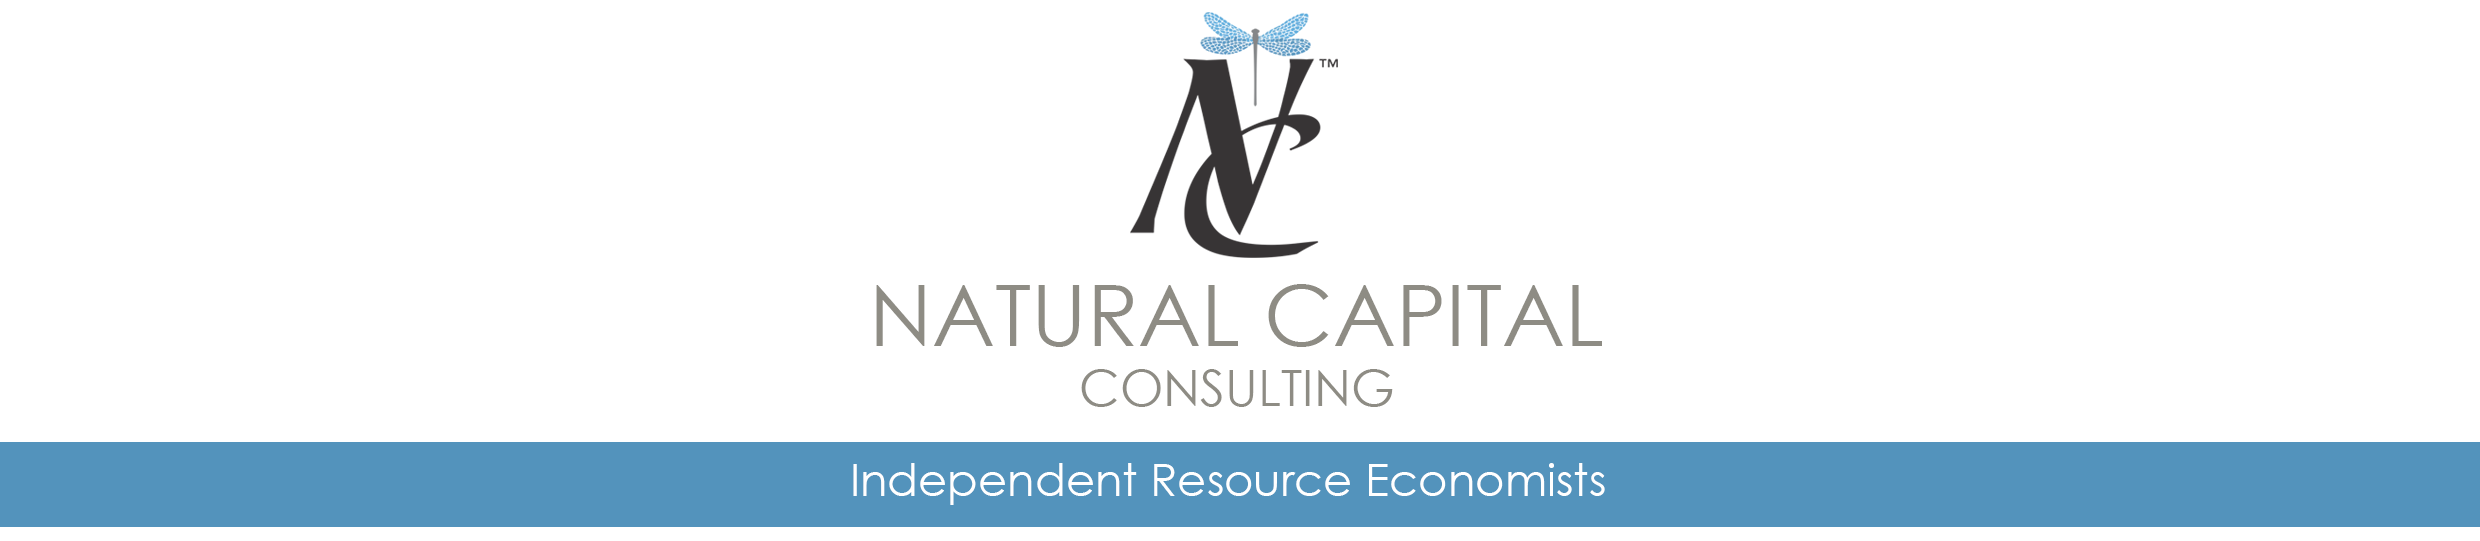 Natural Capital Consulting